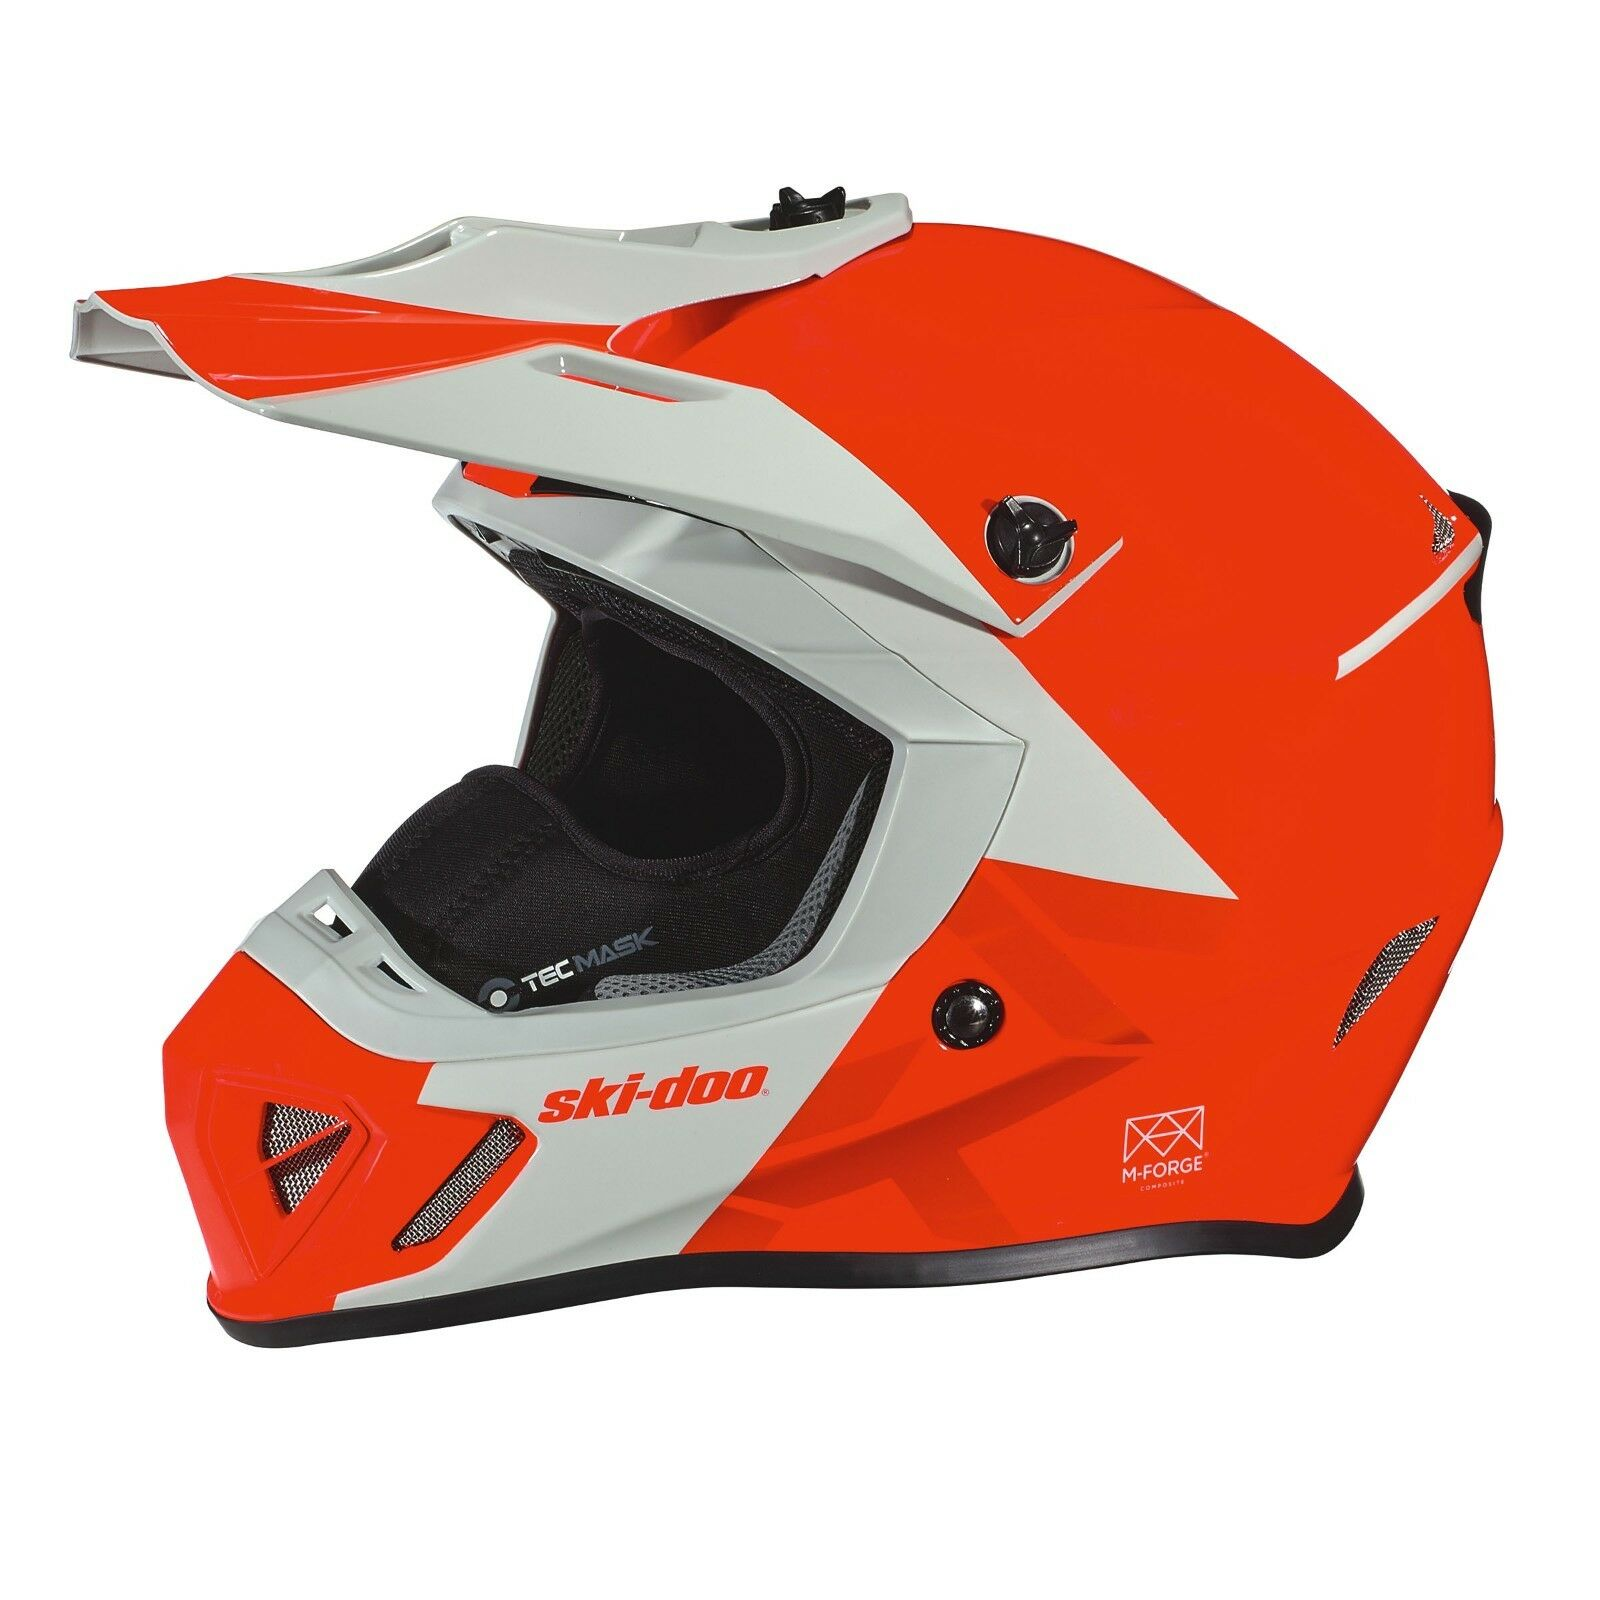 2019 SKI-DOO XP-X  TEAM HELMET 4485600912 LARGE L orange  fashionable